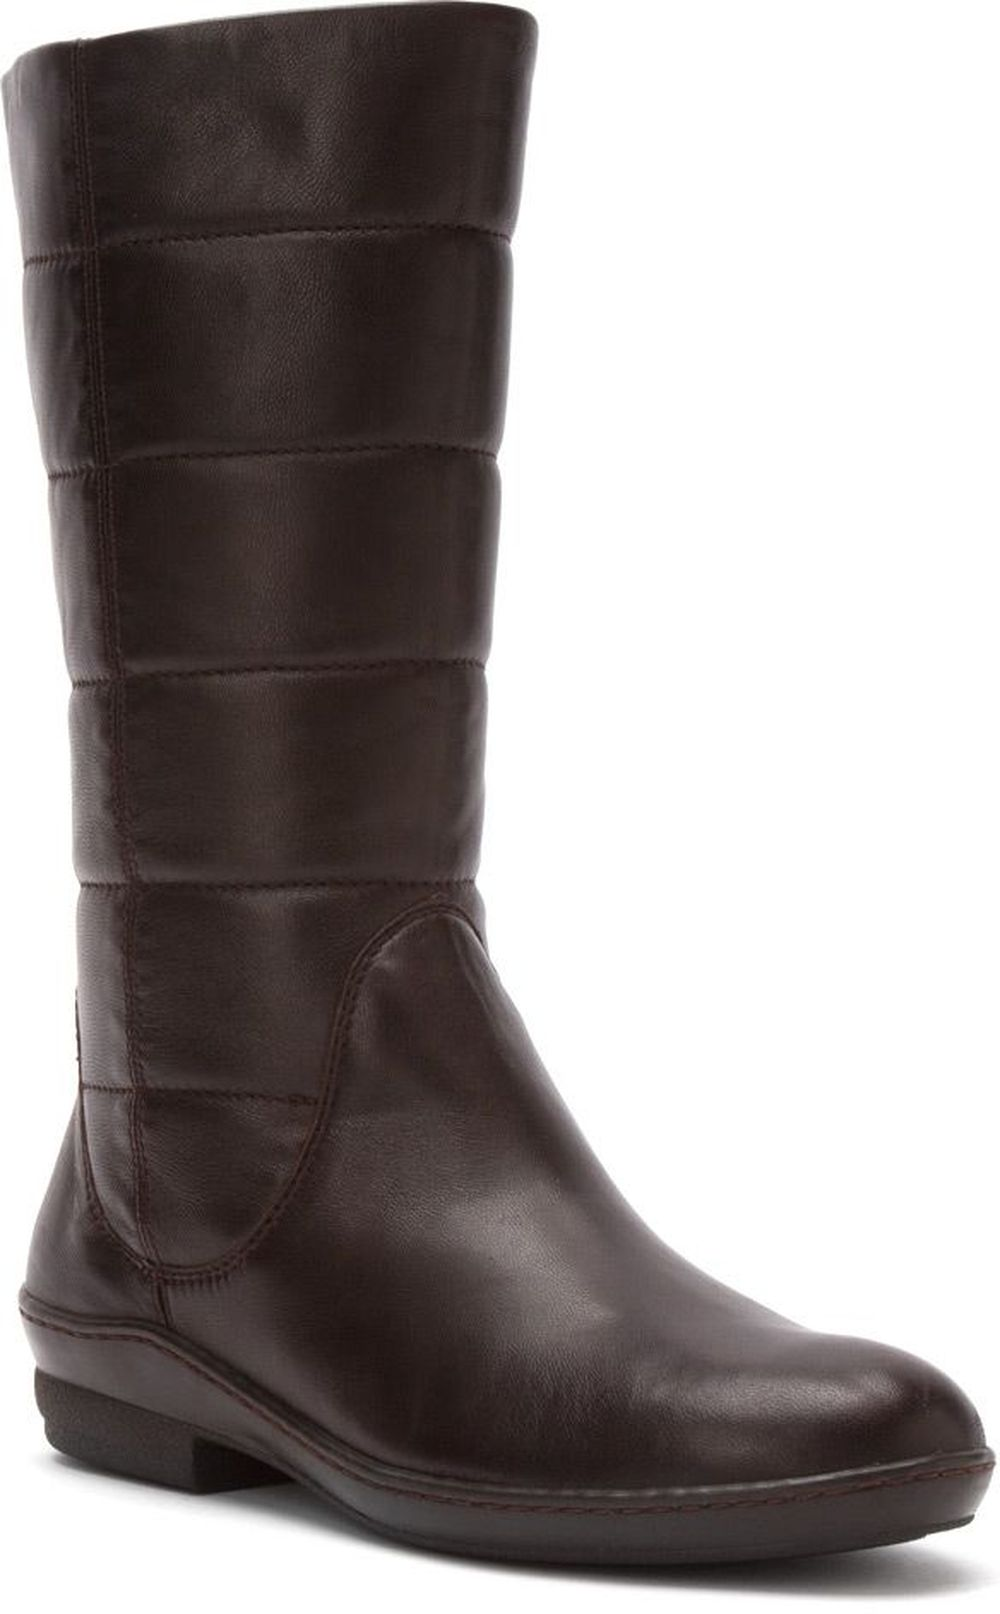 David Tate Women's David Tate Pamela Fashion Mid-Calf Boots Side Zip Brown Leather Wide